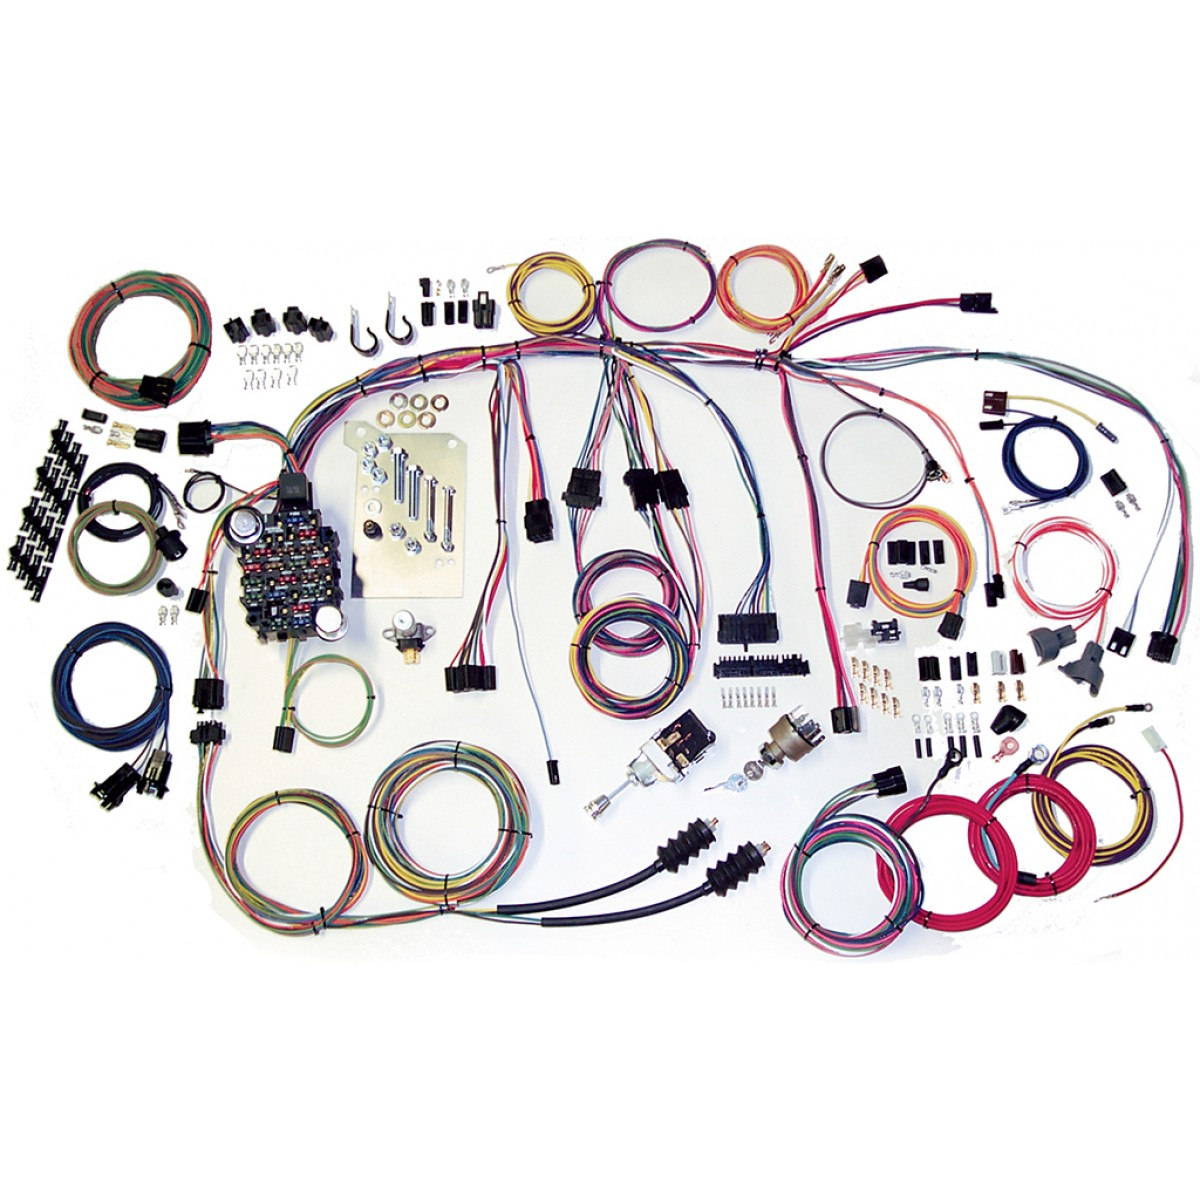 chevy c10 wiring harness complete wiring harness kit 1960 1966 rh code510 com Chevy Engine Wiring Harness Diagram Chevy Truck Wiring Schematics